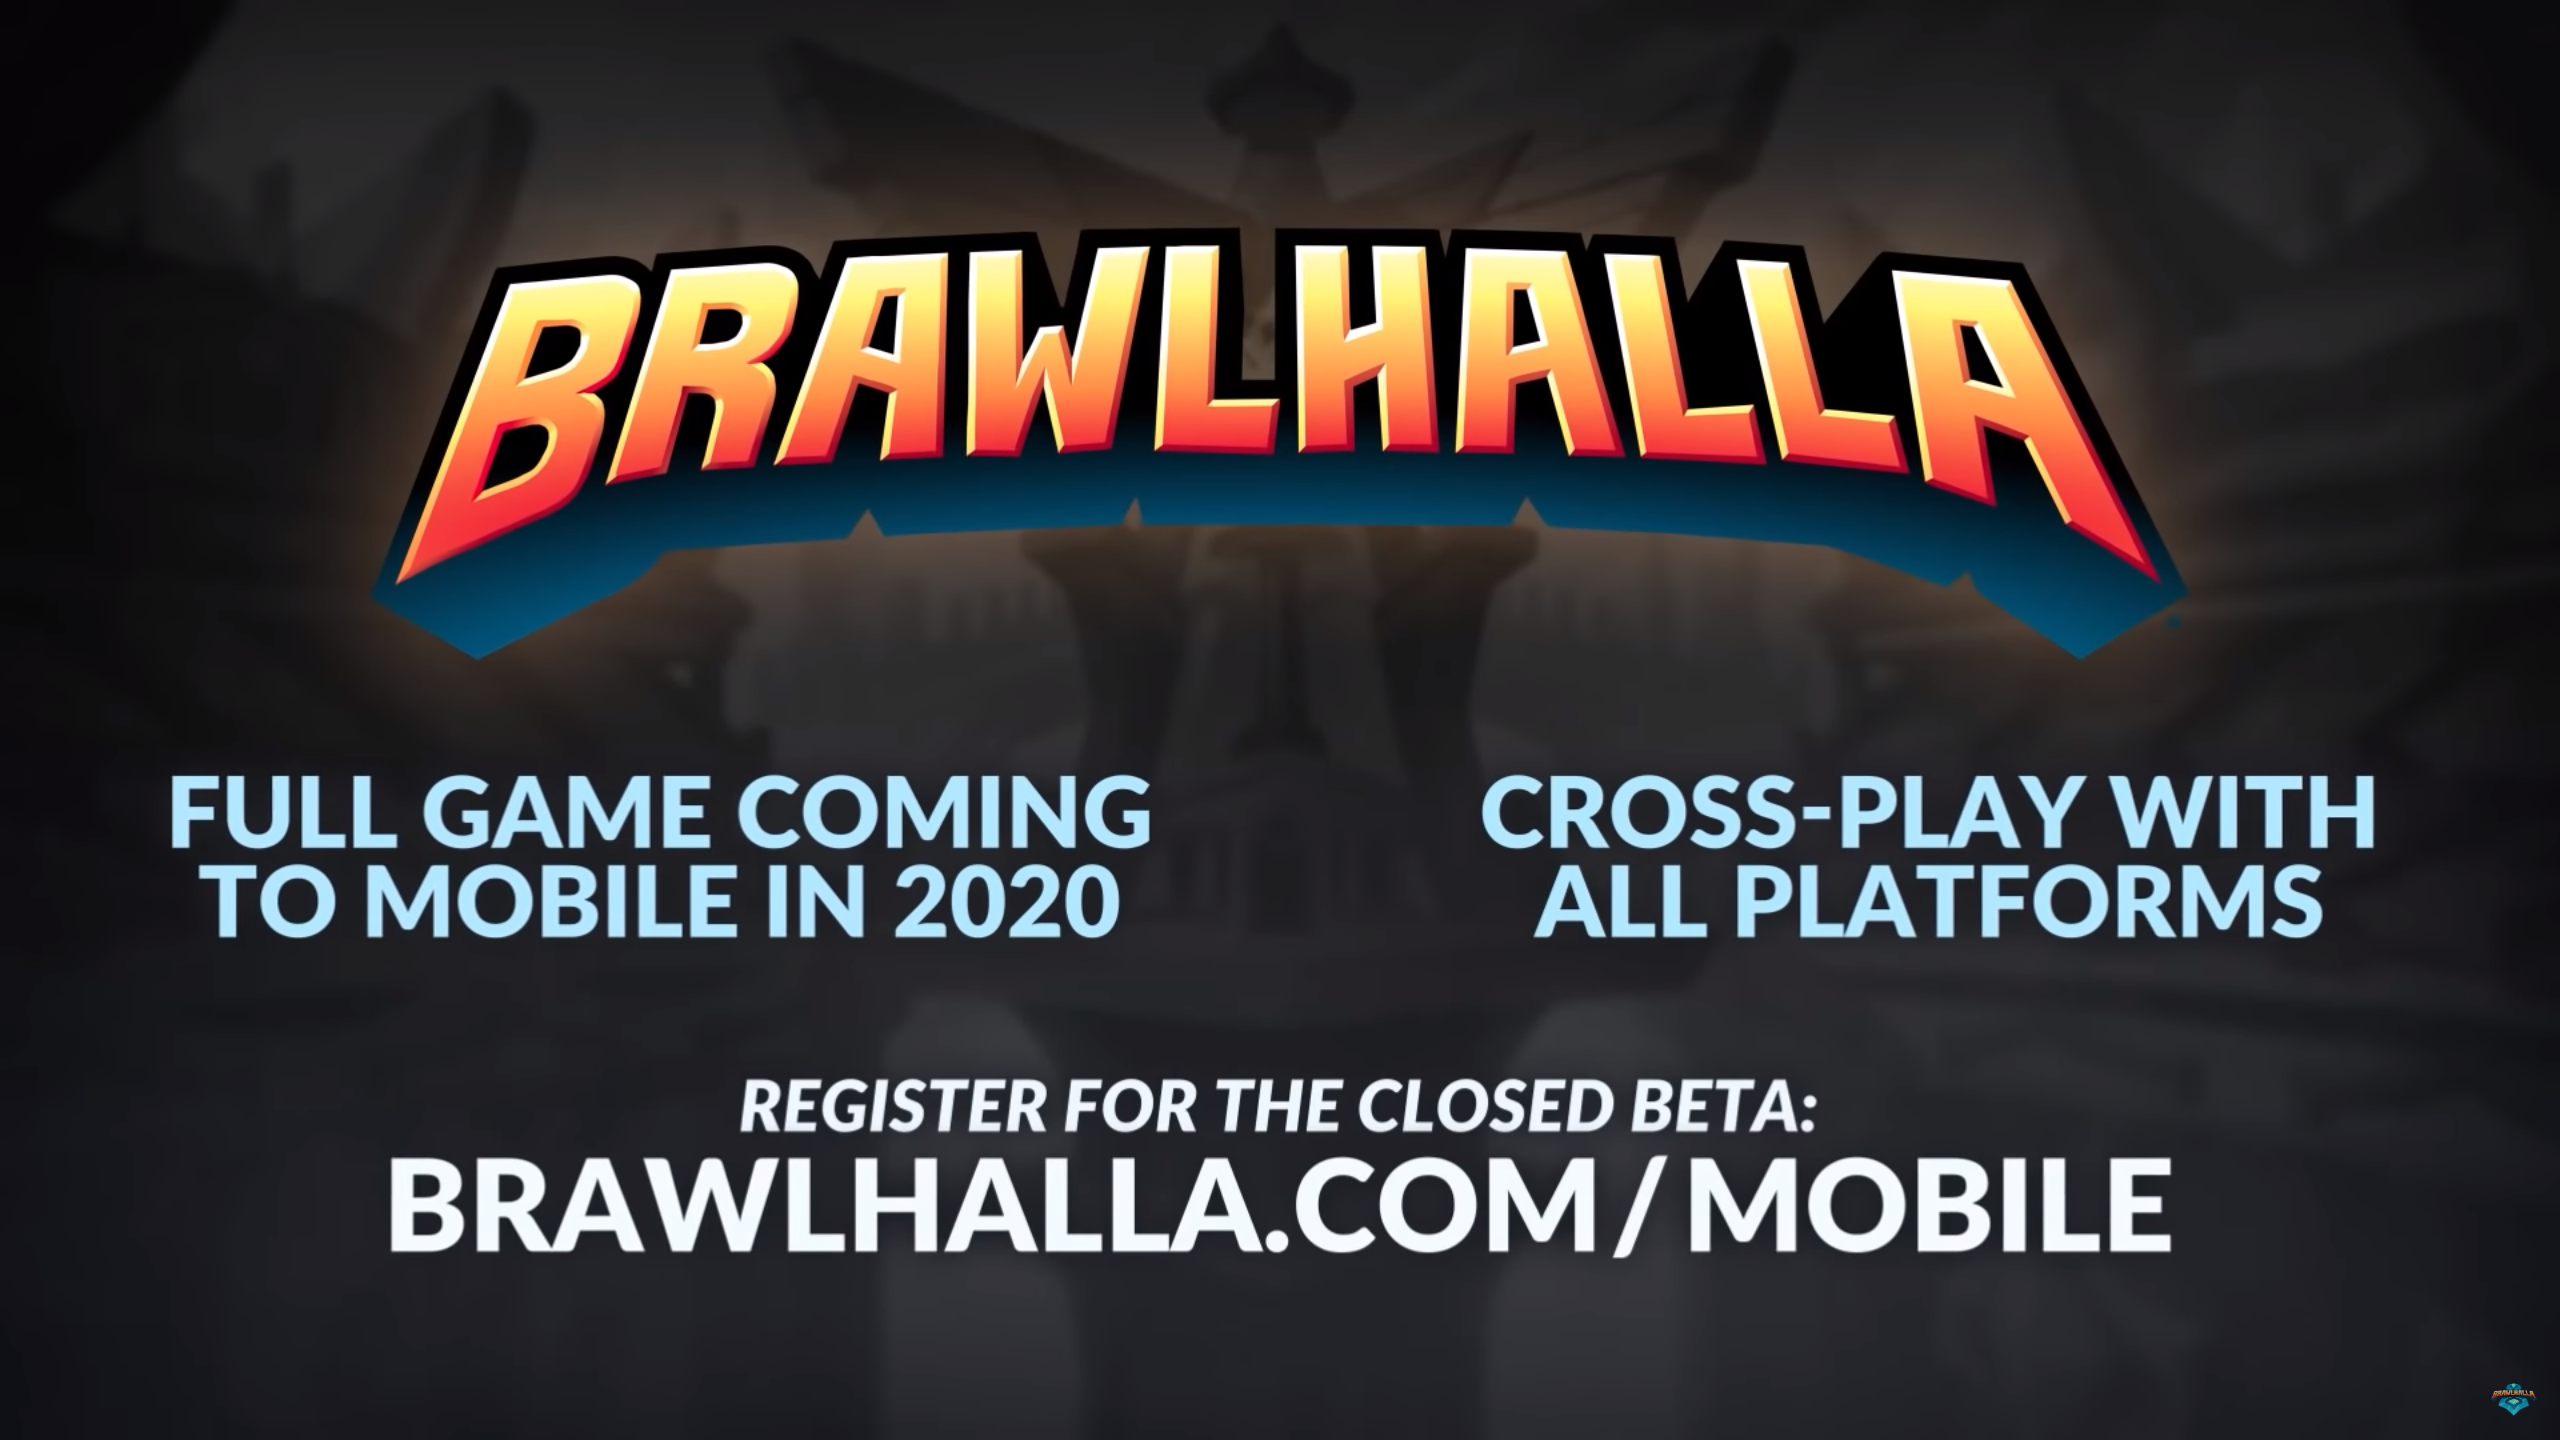 Winter Brawl 2020.Brawlhalla Is Officially Coming To Android In 2020 And You